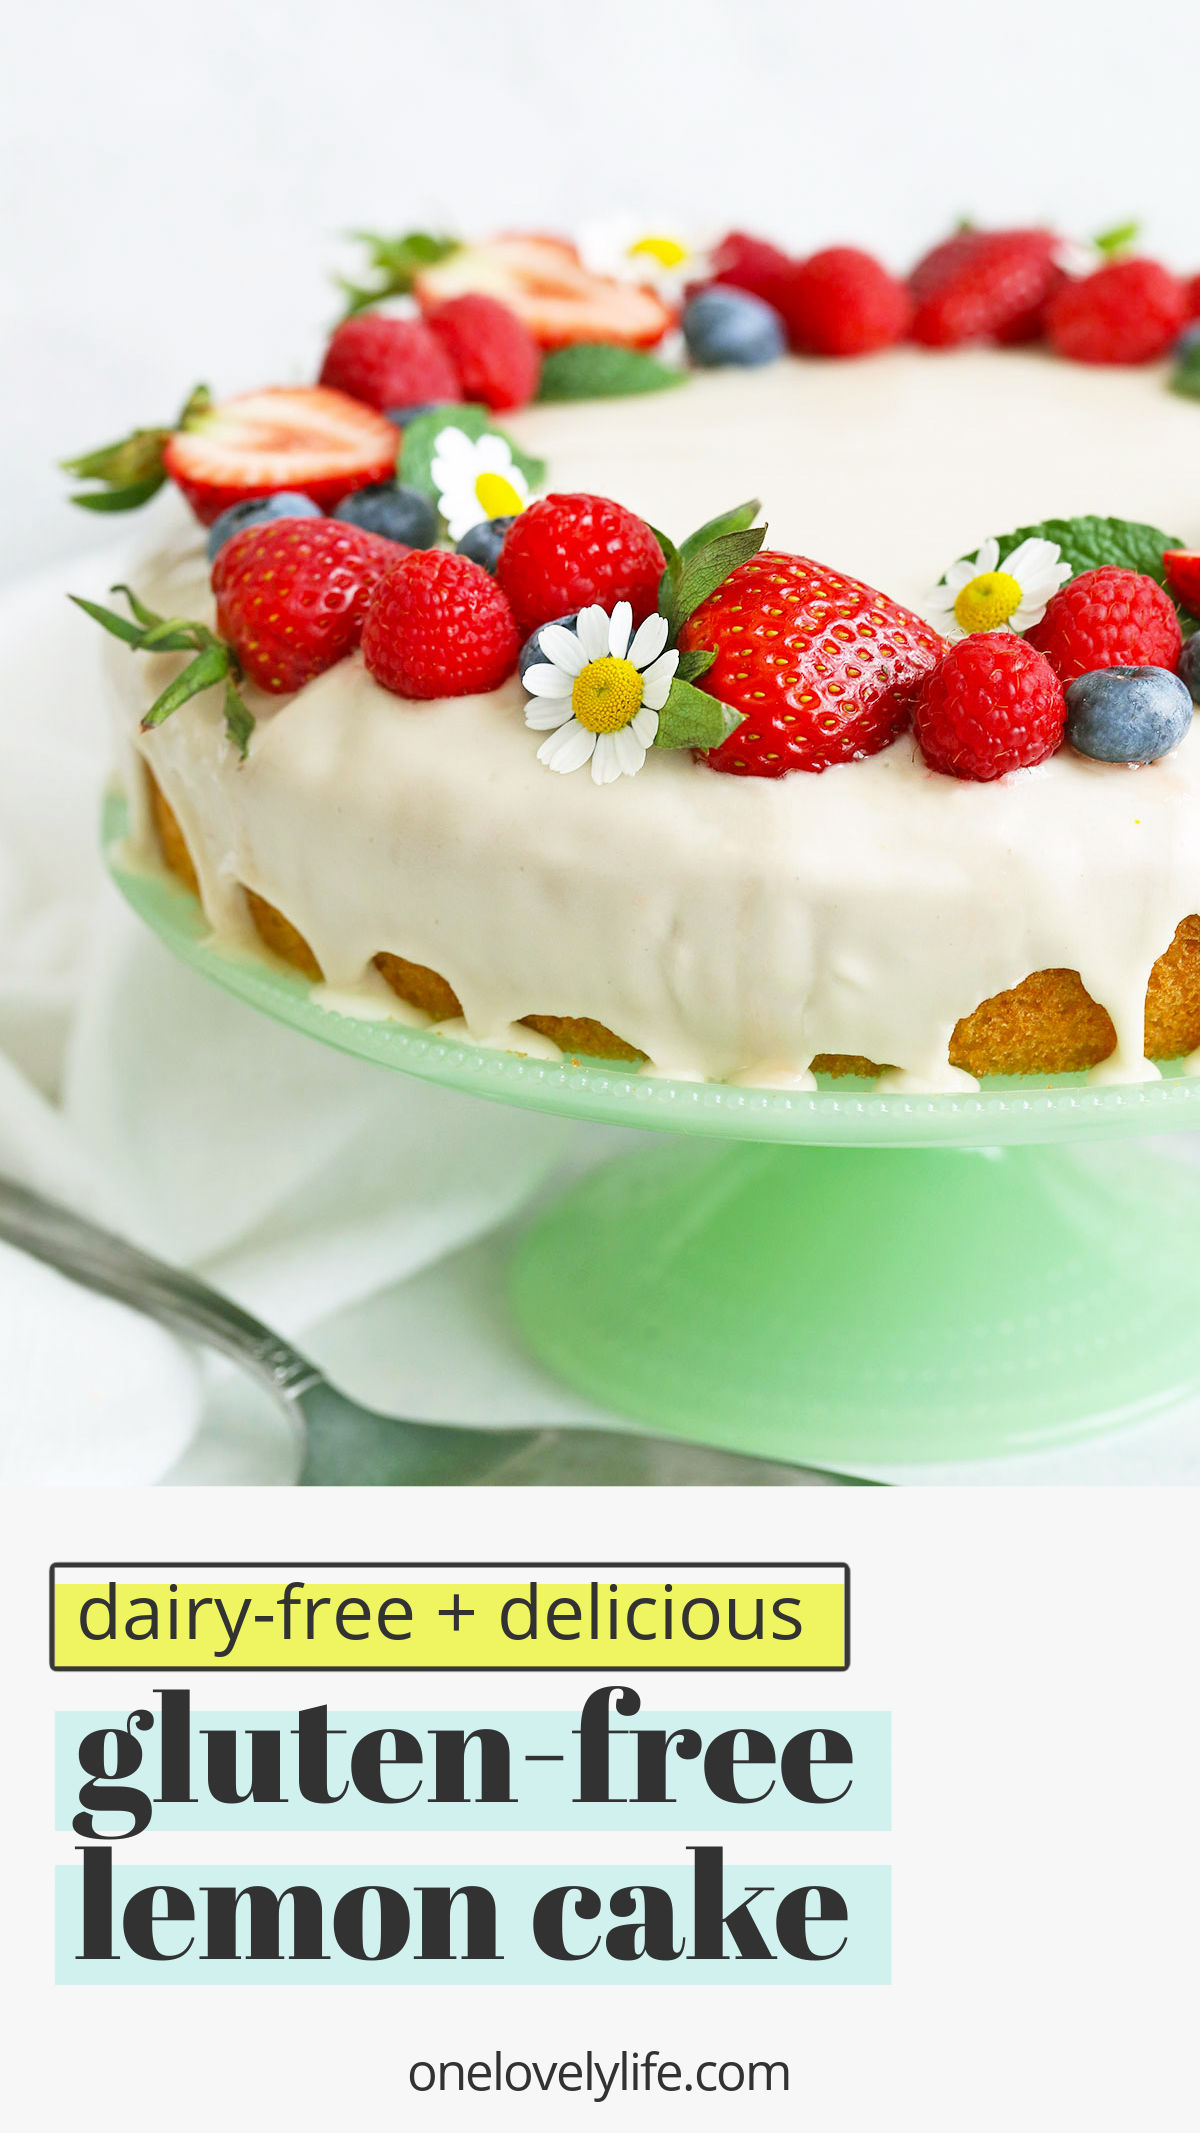 Gluten Free Lemon Cake - This bright, tangy gluten free lemon cake is like eating a bite of sunshine. Gluten free, dairy free, and absolutely delicious.// gluten free lemon cake recipe // dairy free lemon cake recipe // lemon cake recipe // easter dessert // spring dessert // spring cake // summer cake #lemoncake #glutenfree #dairyfree #cake #glutenfreecake